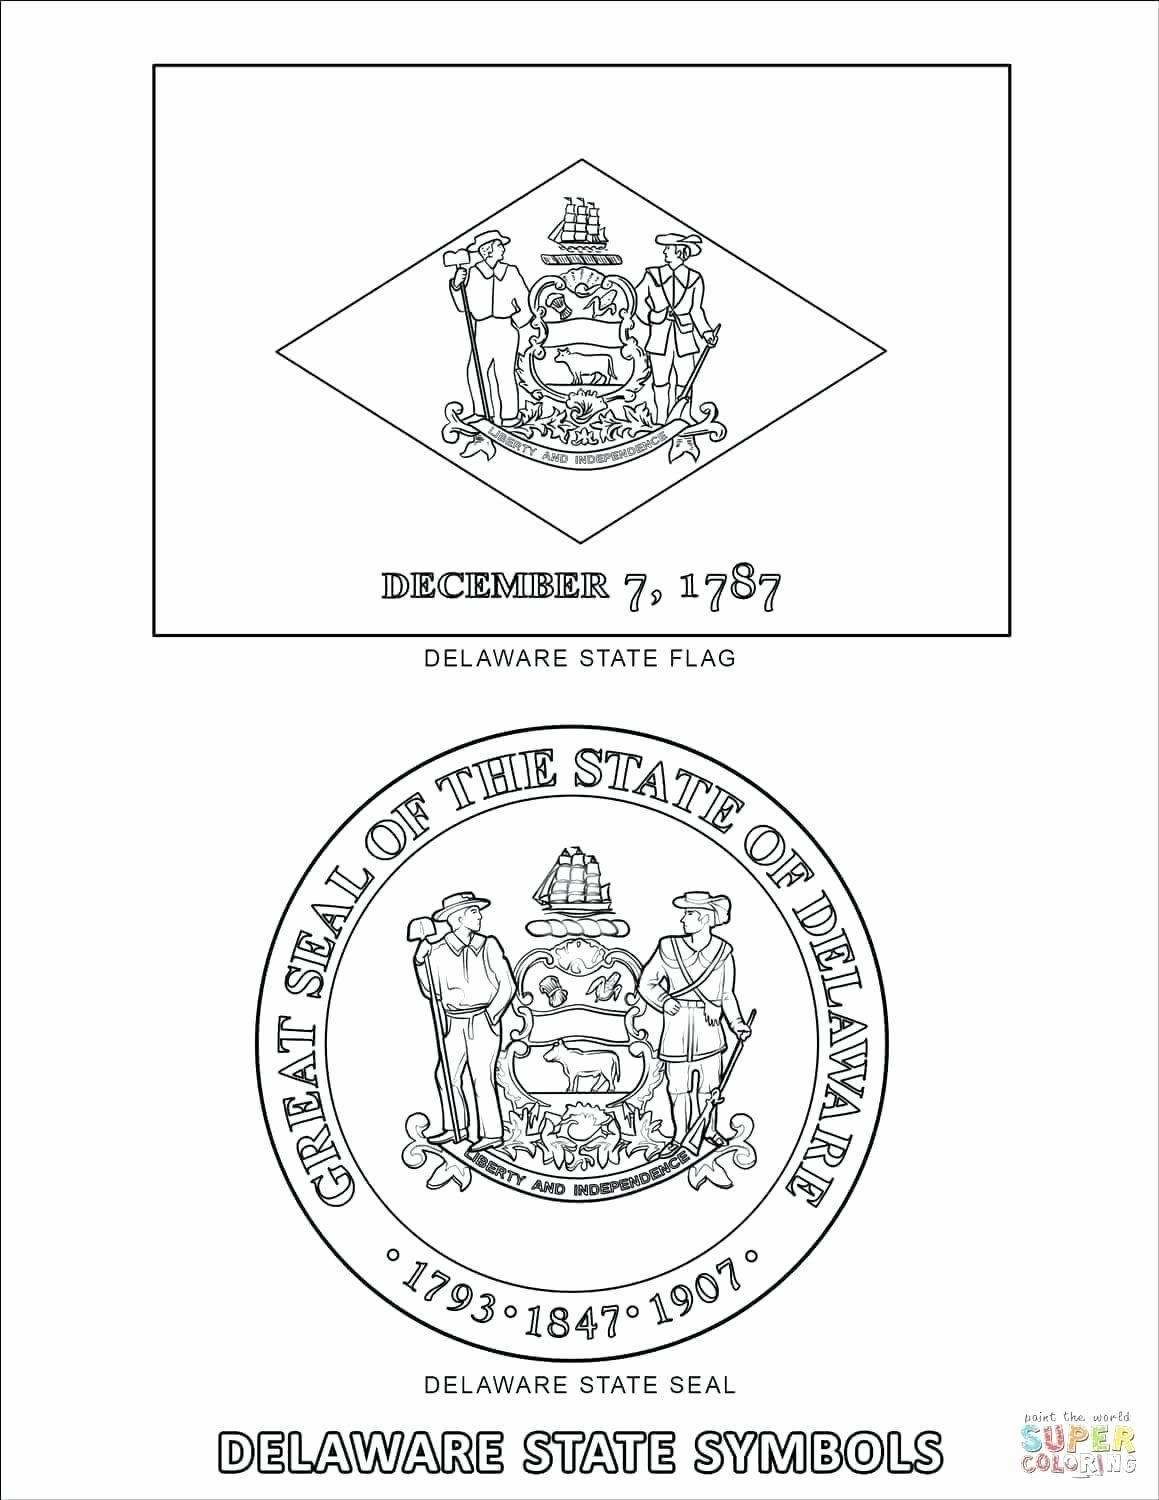 Pennsylvania State Bird Coloring Page New Tennessee Flag Coloring Page Oneupcolor Flag Coloring Pages Delaware State Flag Different Country Flags